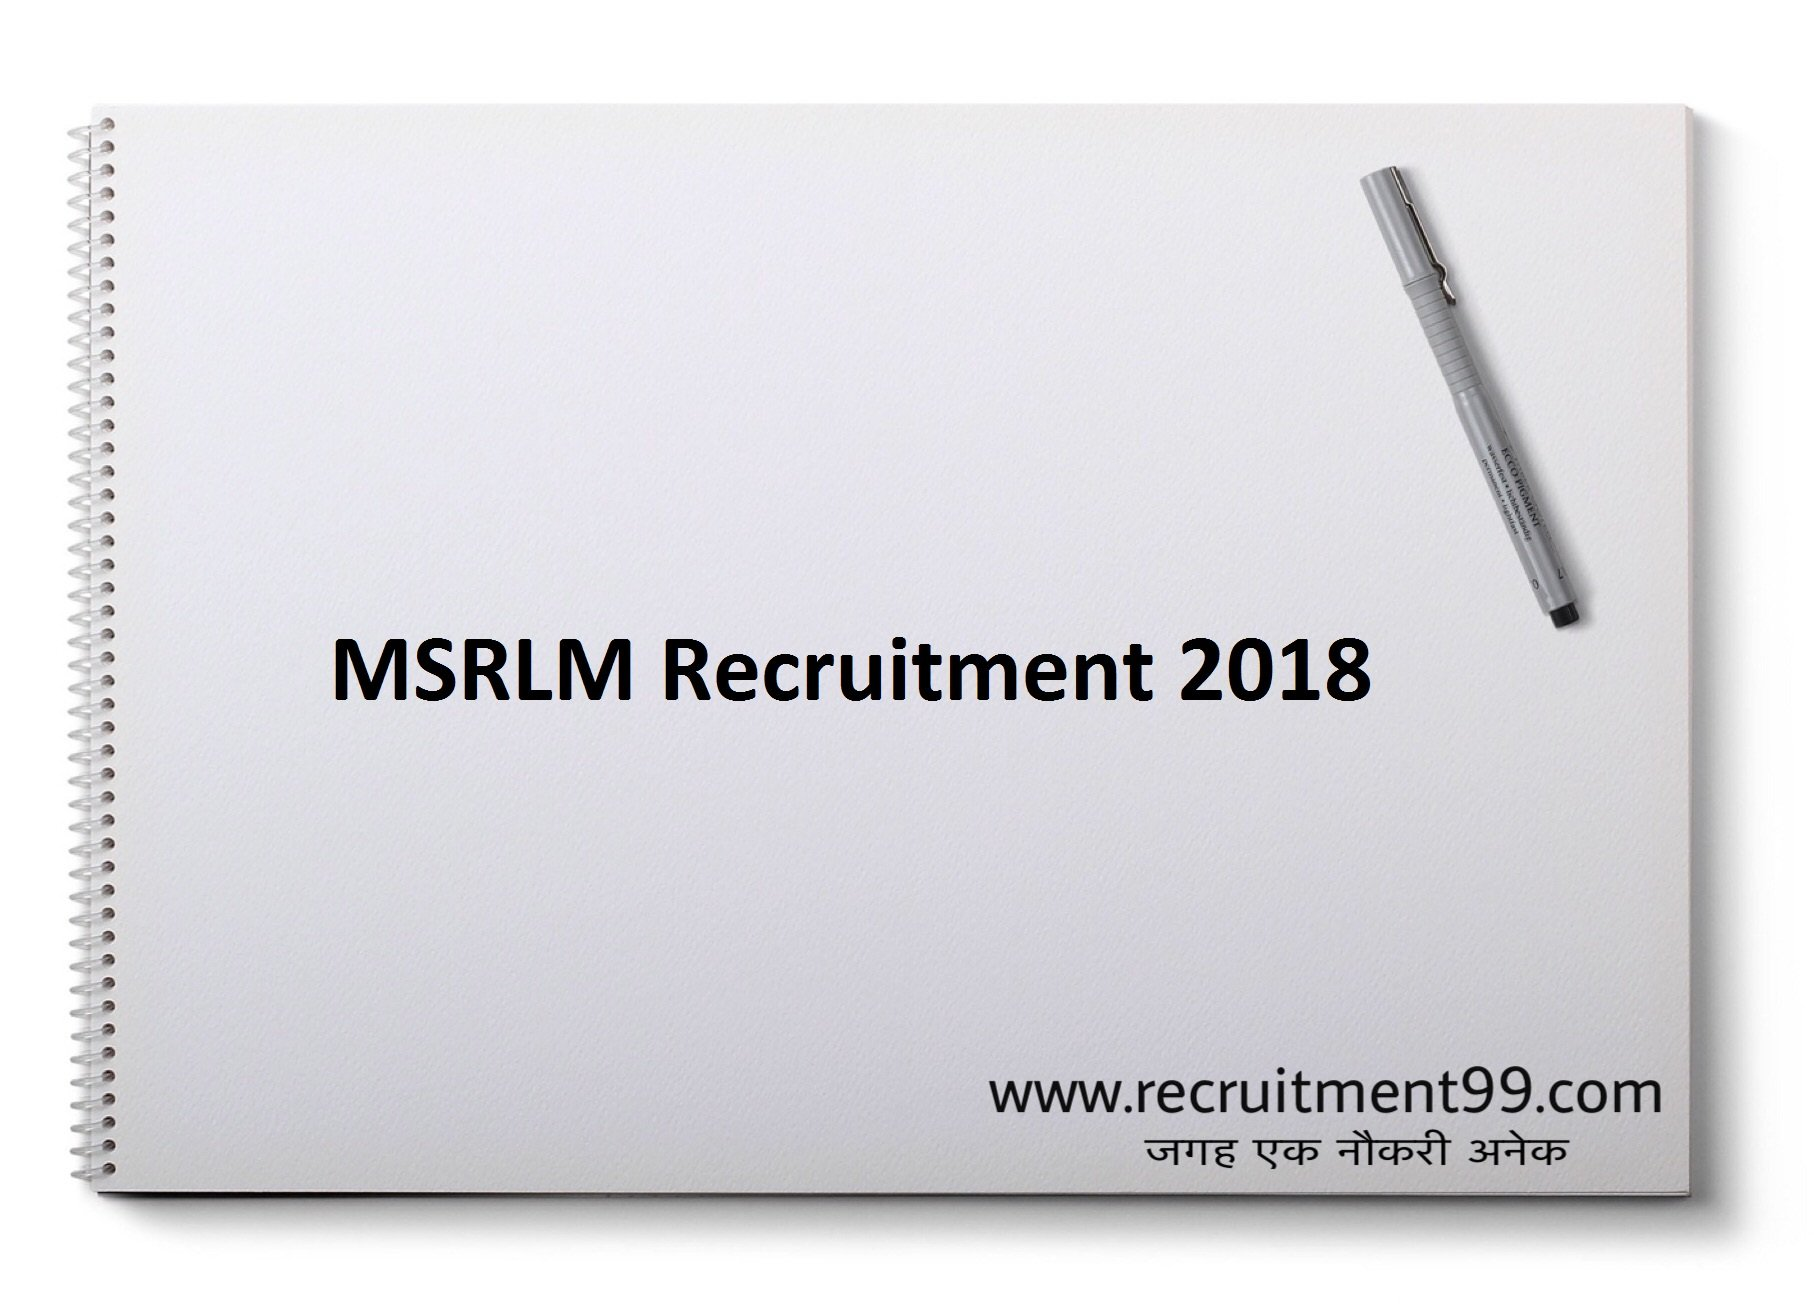 MSRLM District Manager & Office Superintendent Recruitment Admit Card & Result 2018